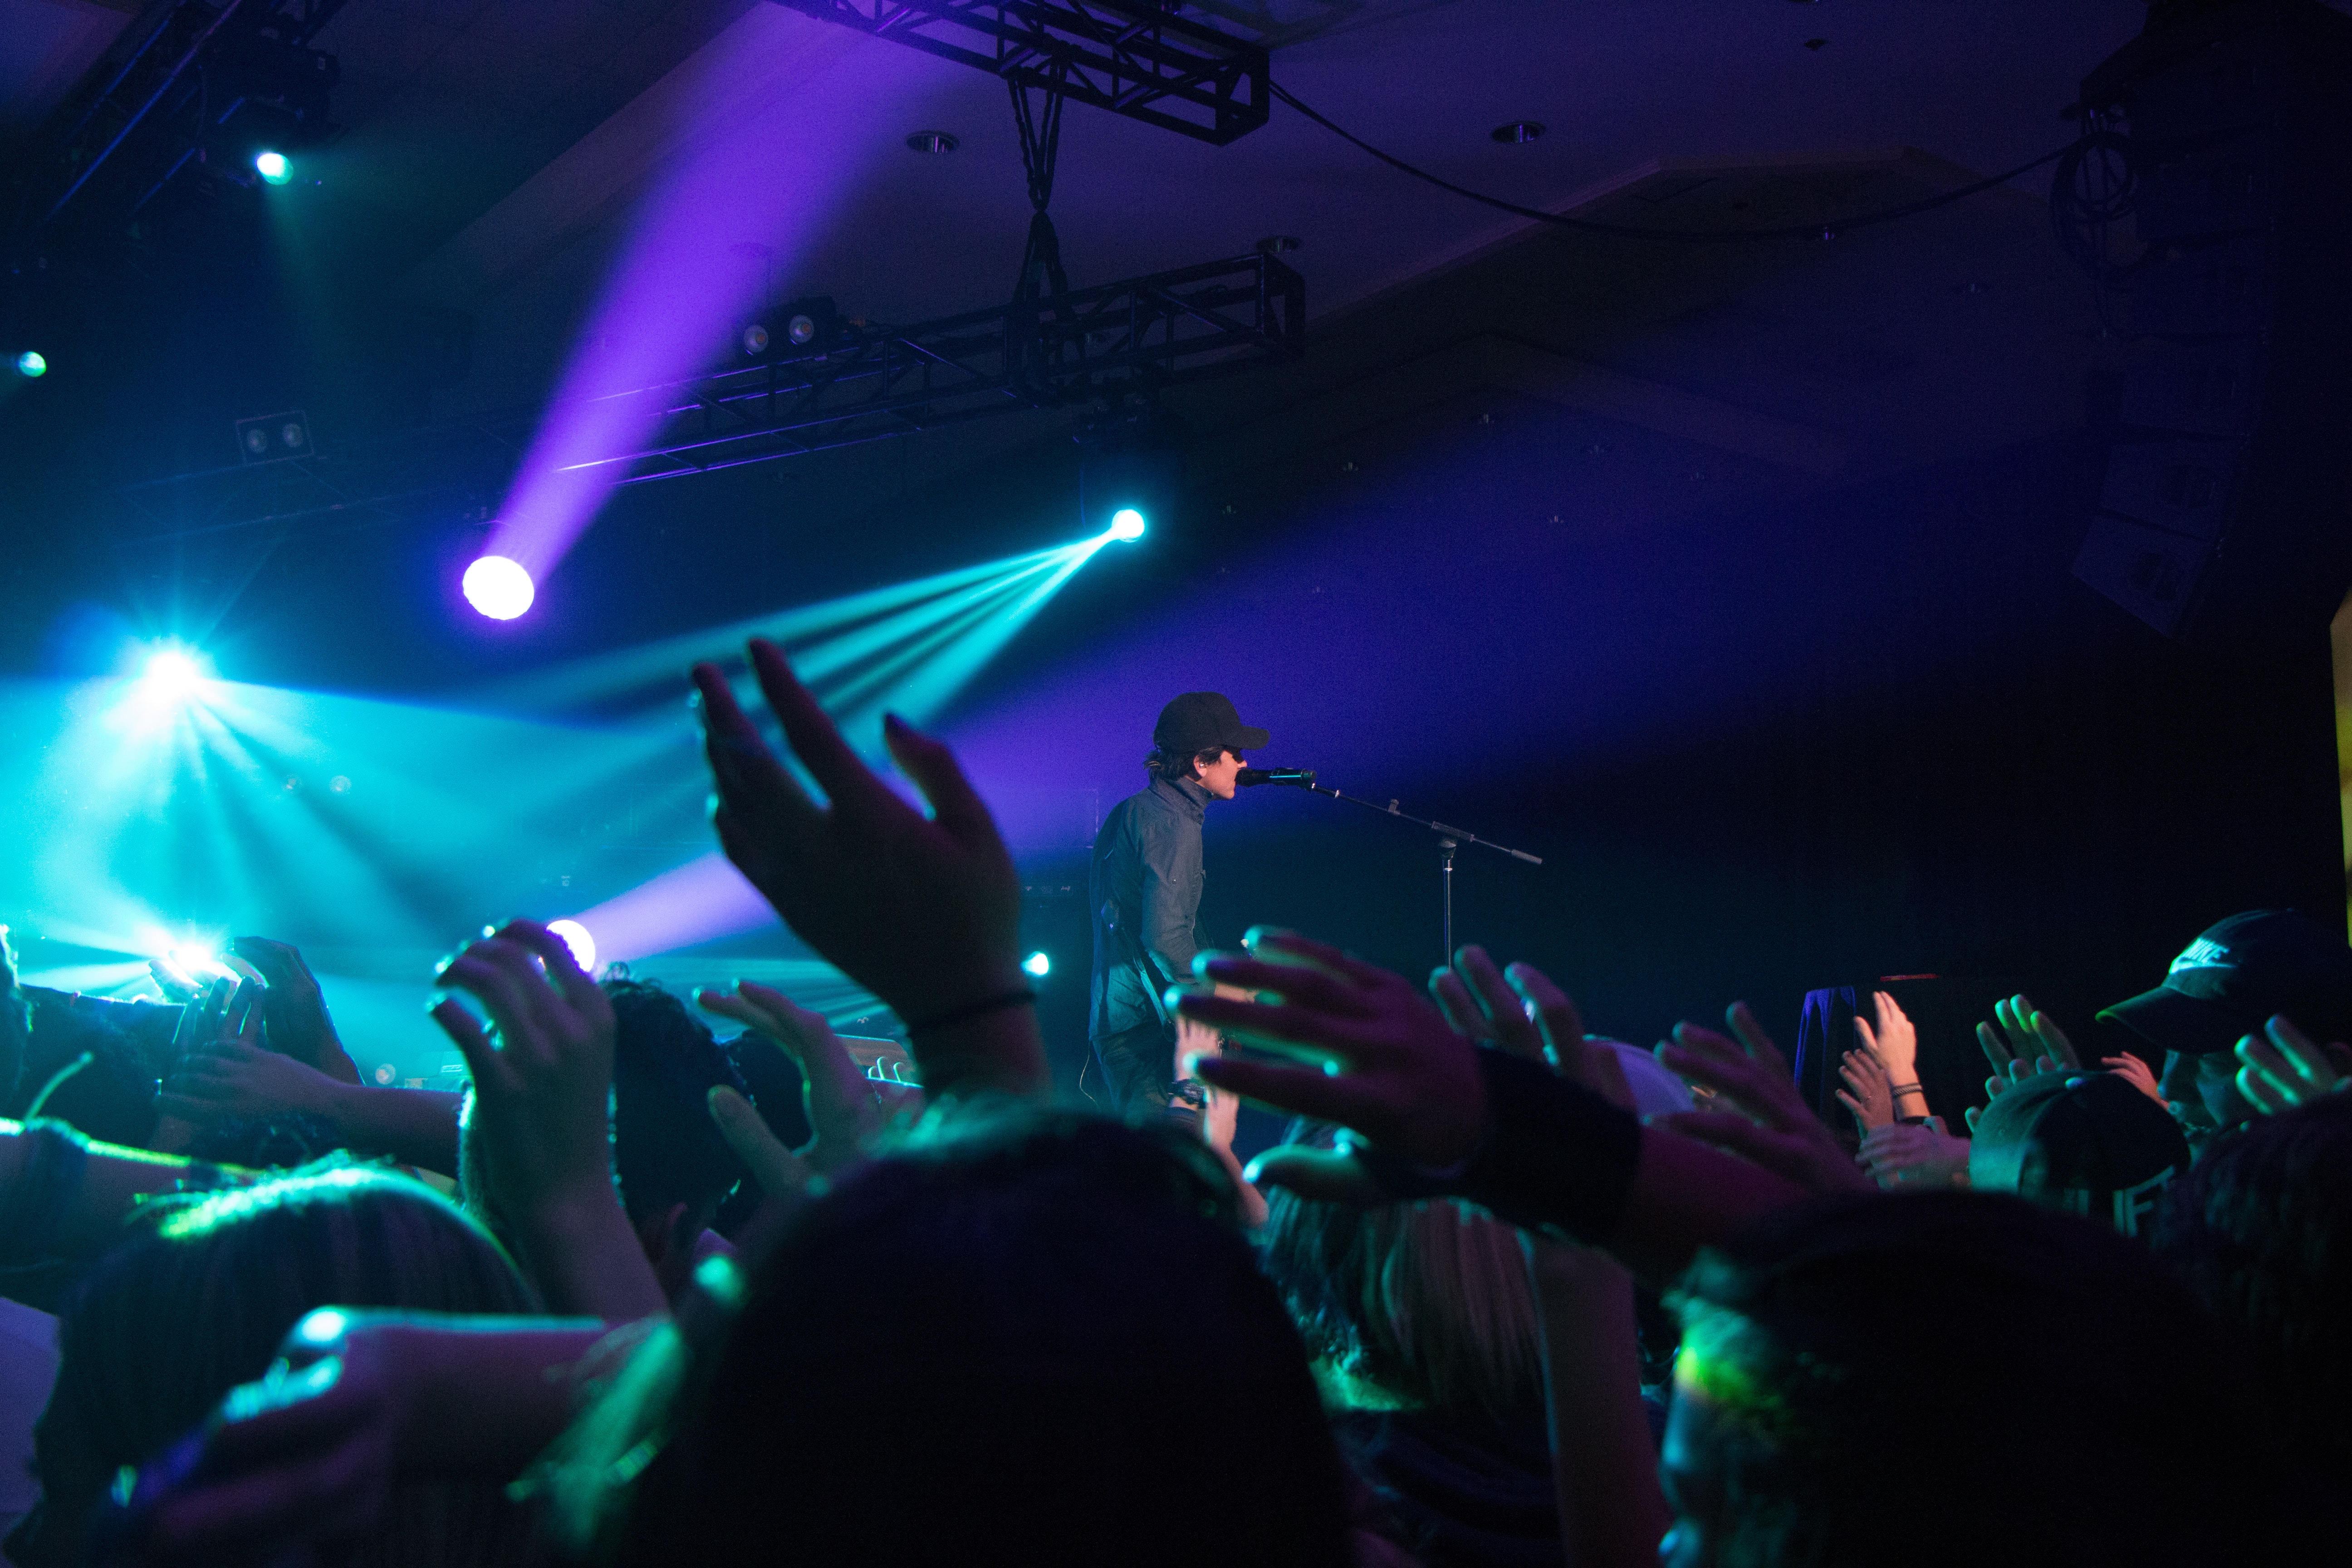 Man singing on stage with stage lights near crowd photo